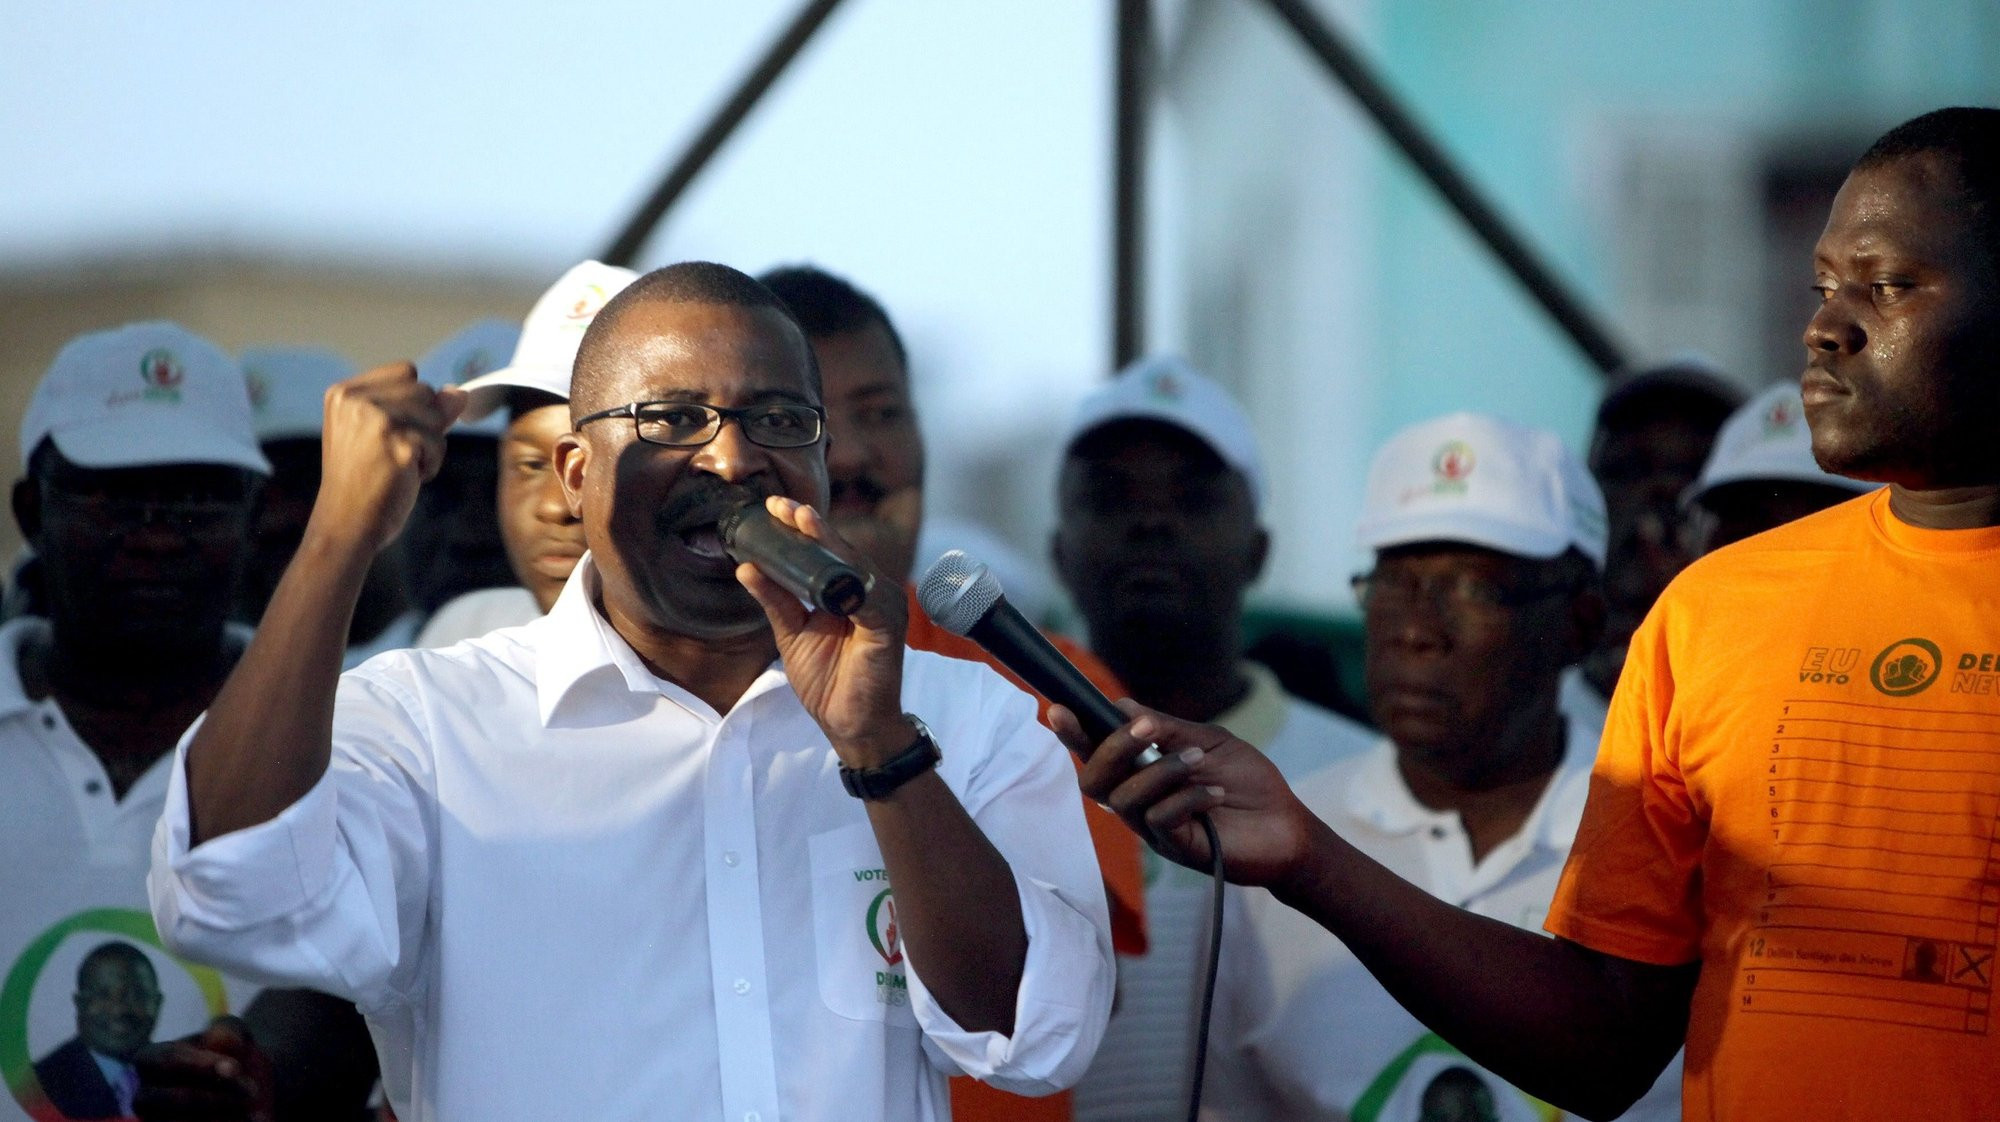 epa02825390 Delfim Neves, independent presidential candidate, delivers a speech during a rally in Sao Tome, Sao Tome and Principe, 15 July 2011. The elections are scheduled for 17 July 2011.  EPA/JOSE COELHO